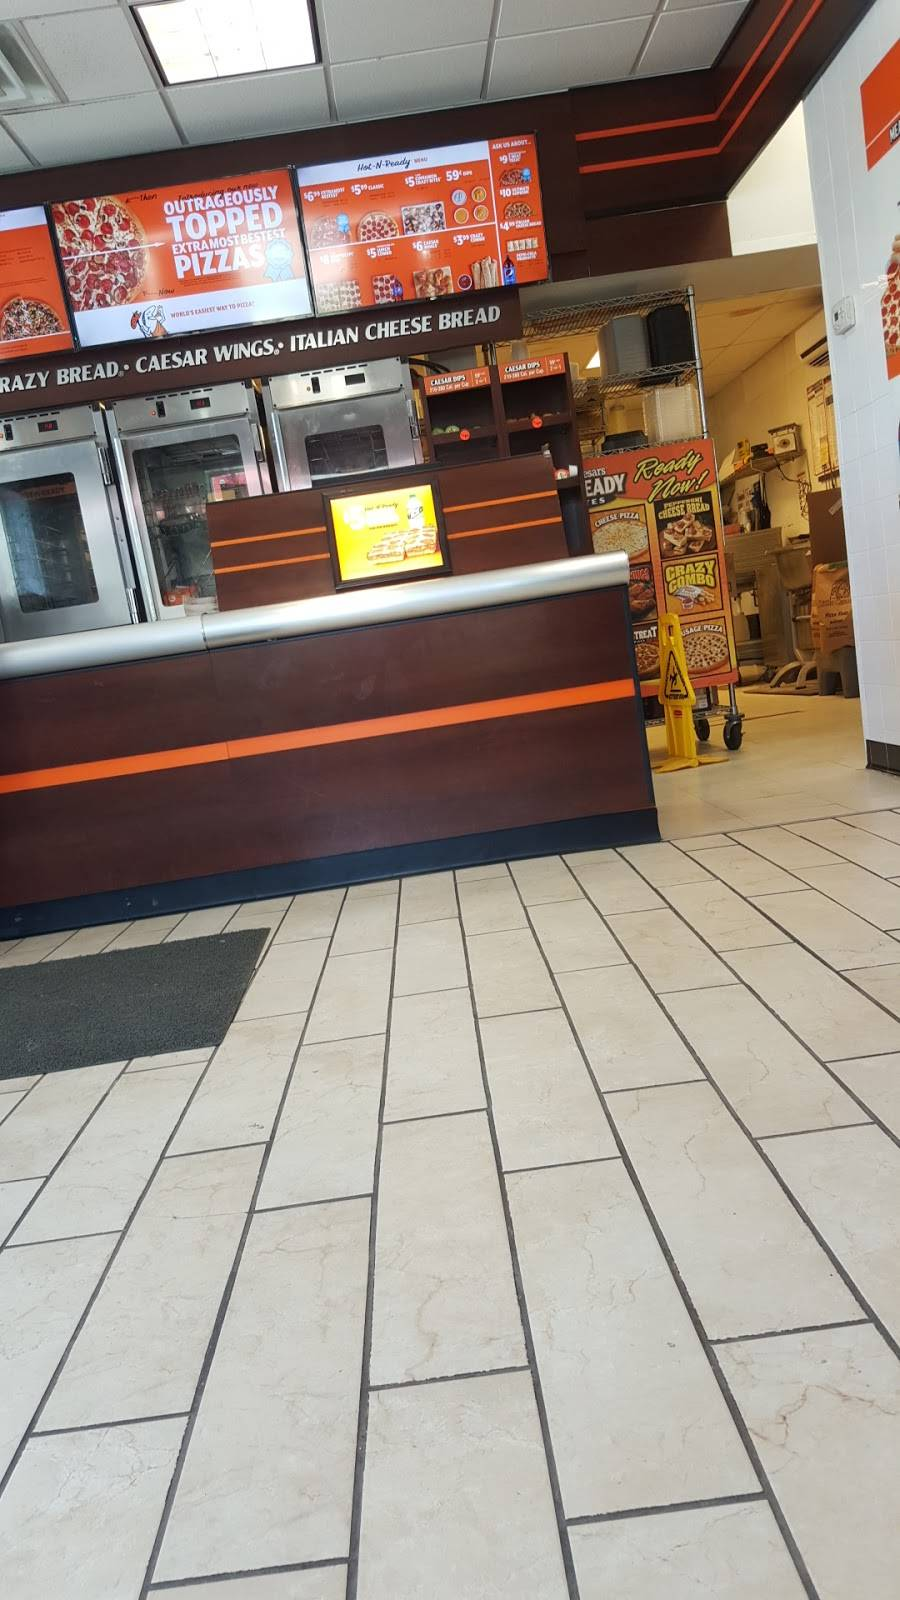 Little Caesars Pizza | meal takeaway | 148-150 Wickham Ave, Middletown, NY 10940, USA | 8453434540 OR +1 845-343-4540